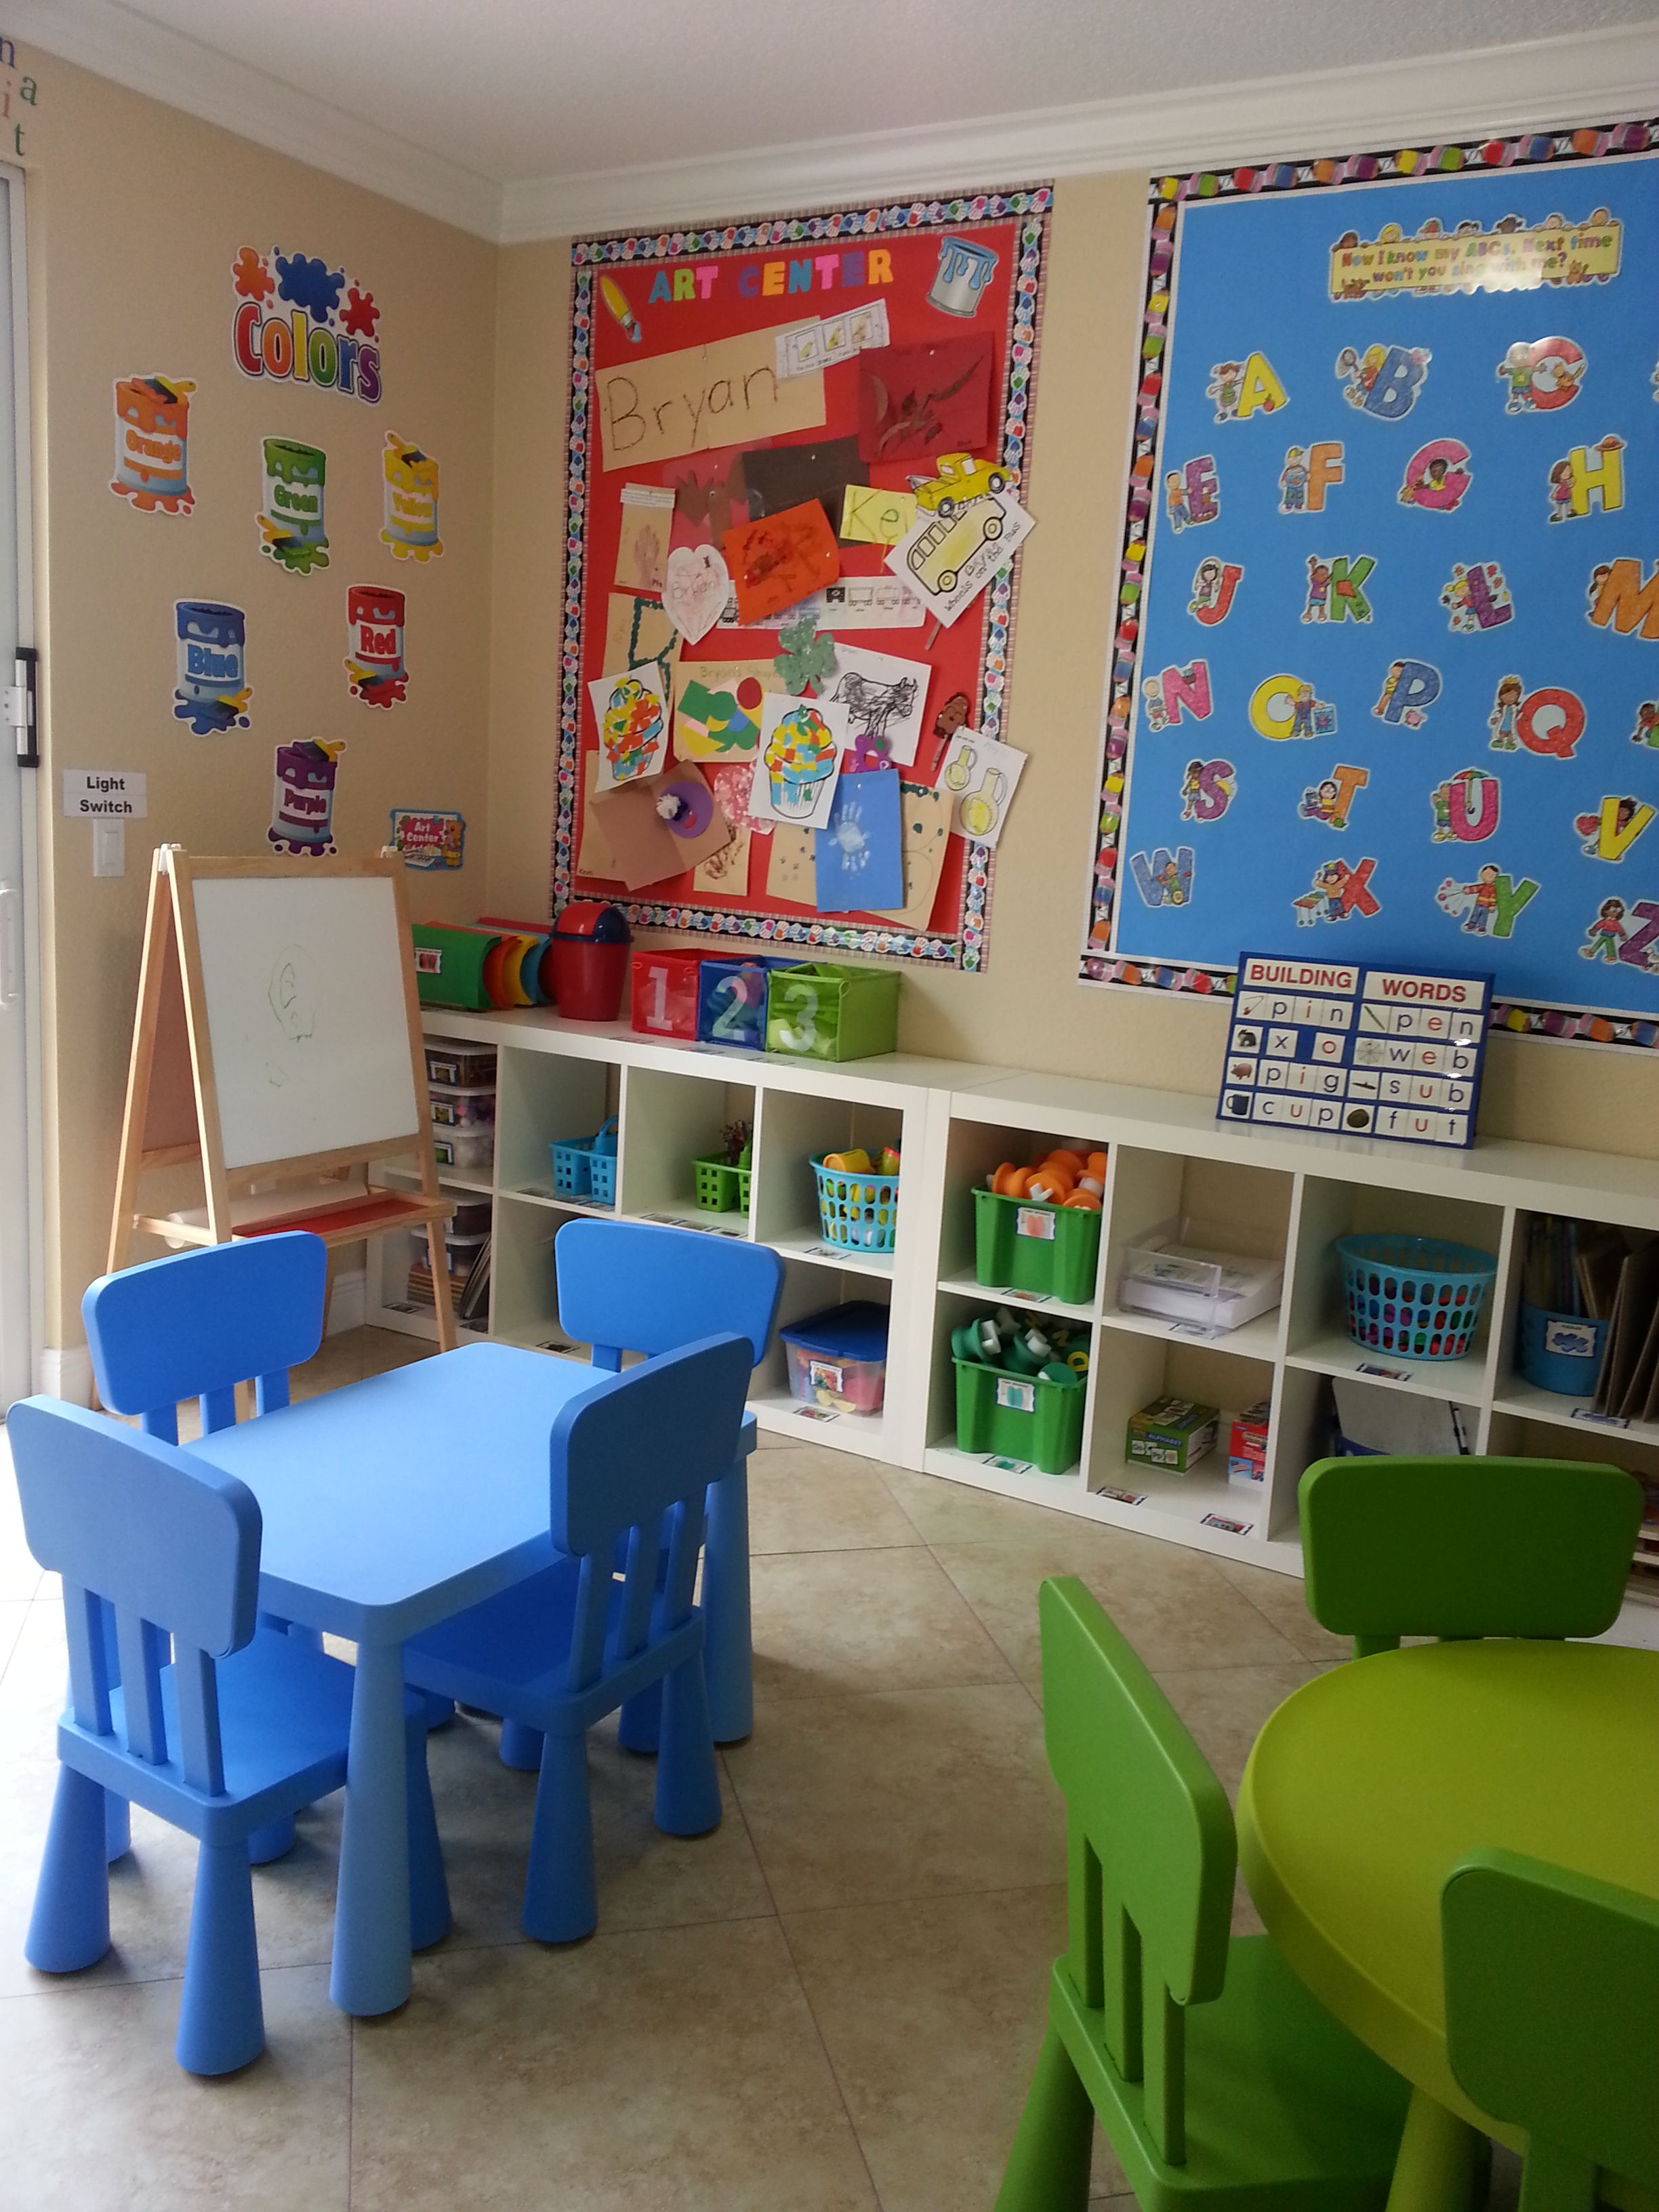 Home Rachelles Preschool Home Daycare: Two Small Tables? HOME DAYCARE IDEAS/ The Kids Place